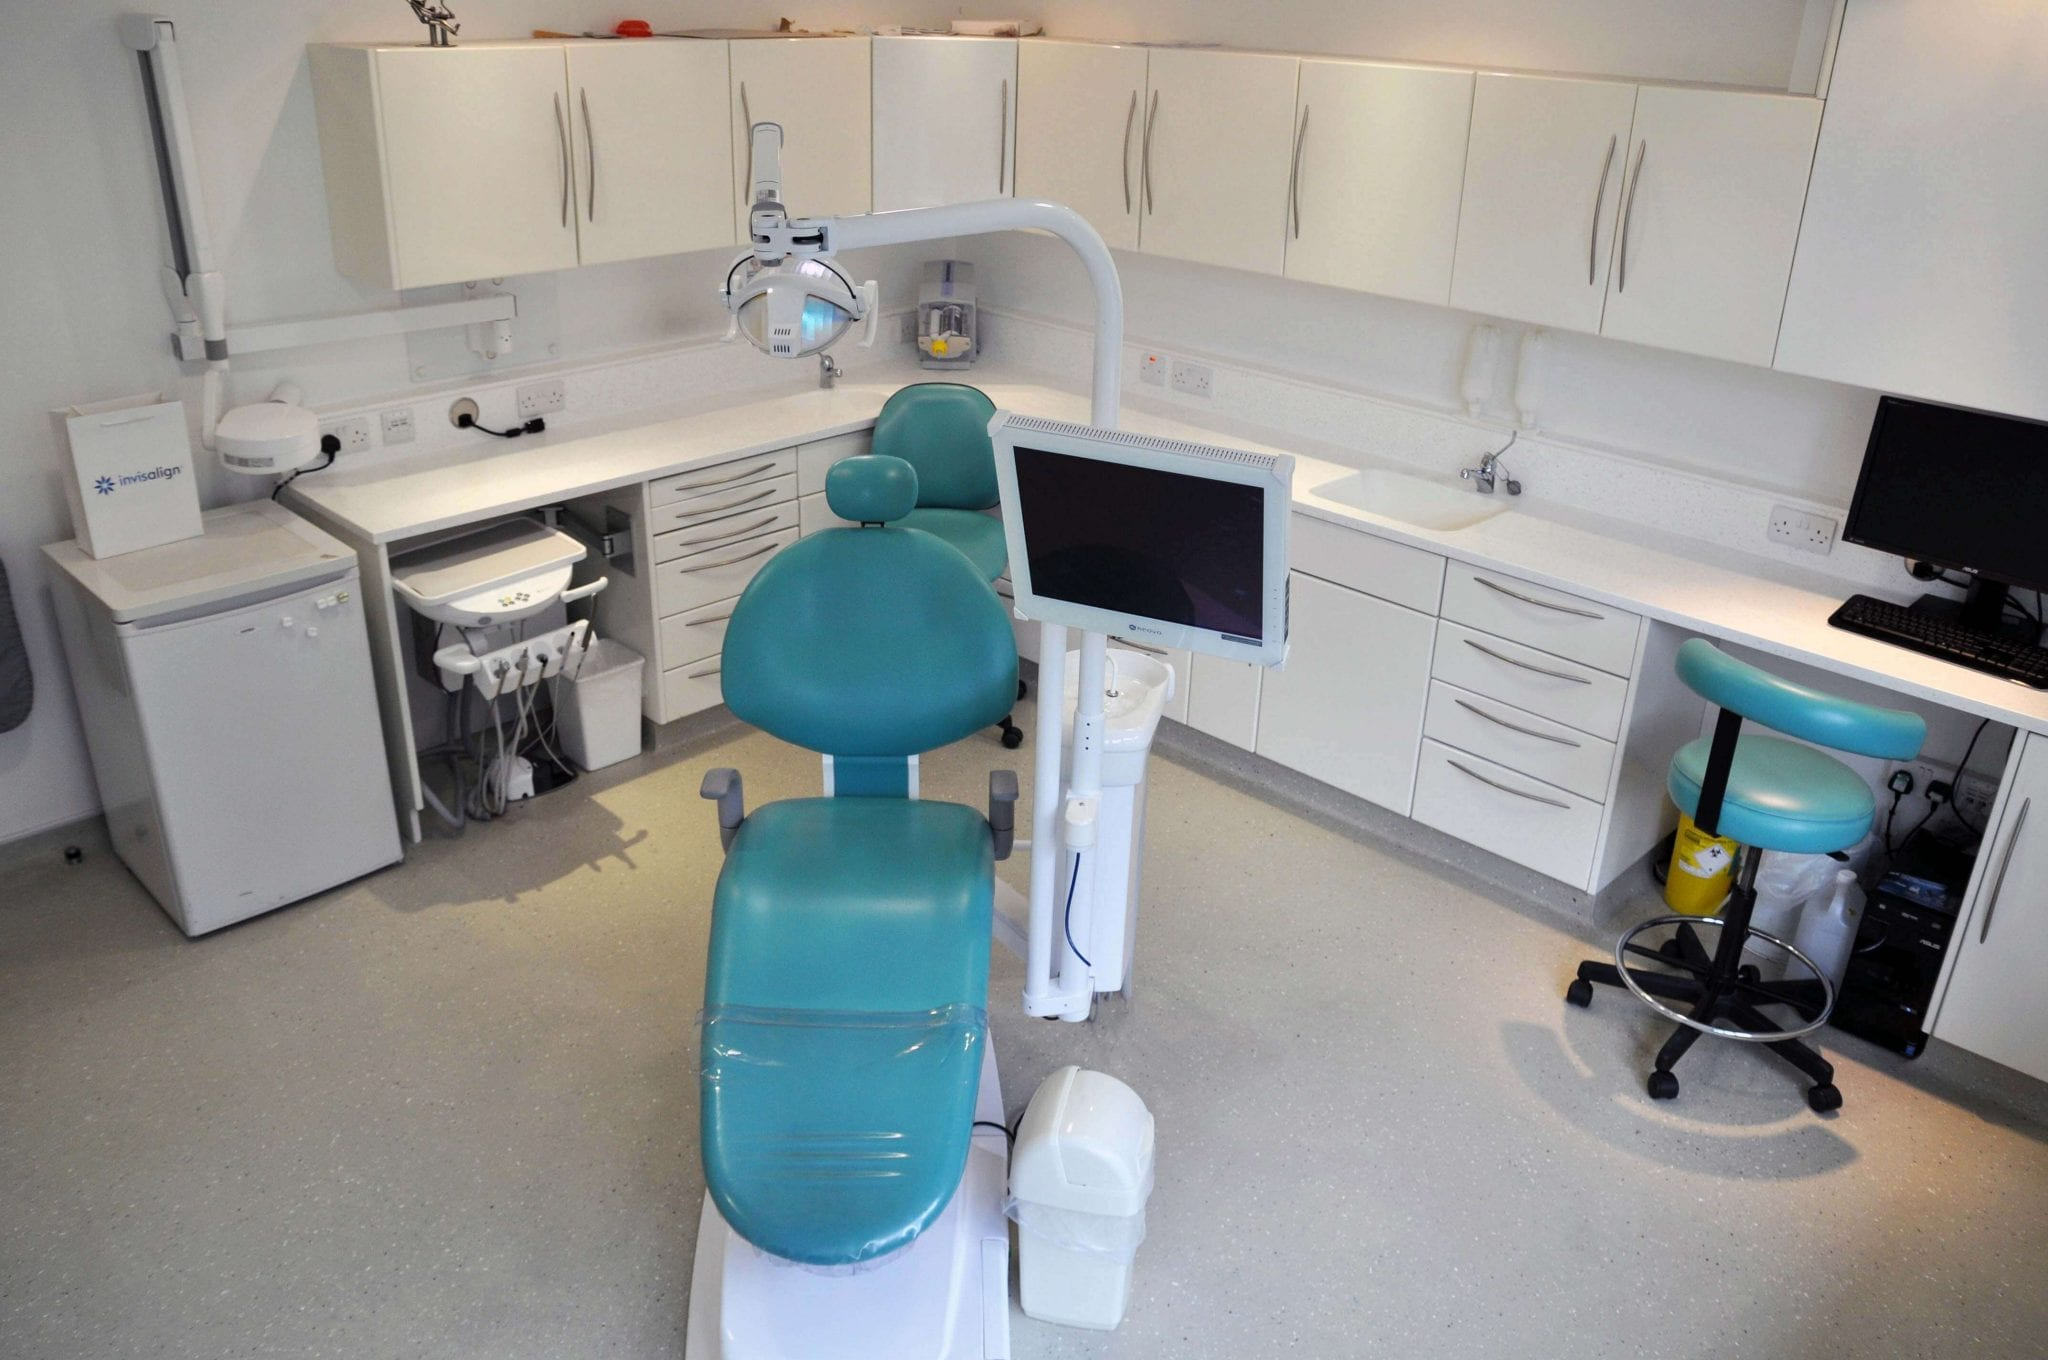 Unusual About Us  London Holborn Dental Practice  Sardinia Dental  With Extraordinary Now They Reside In A Newly Renovated Practice Situated On The Th Floor Of  Sardinia House Sardinia Street A Short Walk Between Holborn And Aldwych   With Cool Brunch In Covent Garden Also Forest Garden Arches In Addition The Boboli Gardens And Metal Garden Edging Uk As Well As In The Night Garden Birthday Cake Ideas Additionally Wentworth Garden Centre Plants From Sardiniadentalcom With   Extraordinary About Us  London Holborn Dental Practice  Sardinia Dental  With Cool Now They Reside In A Newly Renovated Practice Situated On The Th Floor Of  Sardinia House Sardinia Street A Short Walk Between Holborn And Aldwych   And Unusual Brunch In Covent Garden Also Forest Garden Arches In Addition The Boboli Gardens From Sardiniadentalcom